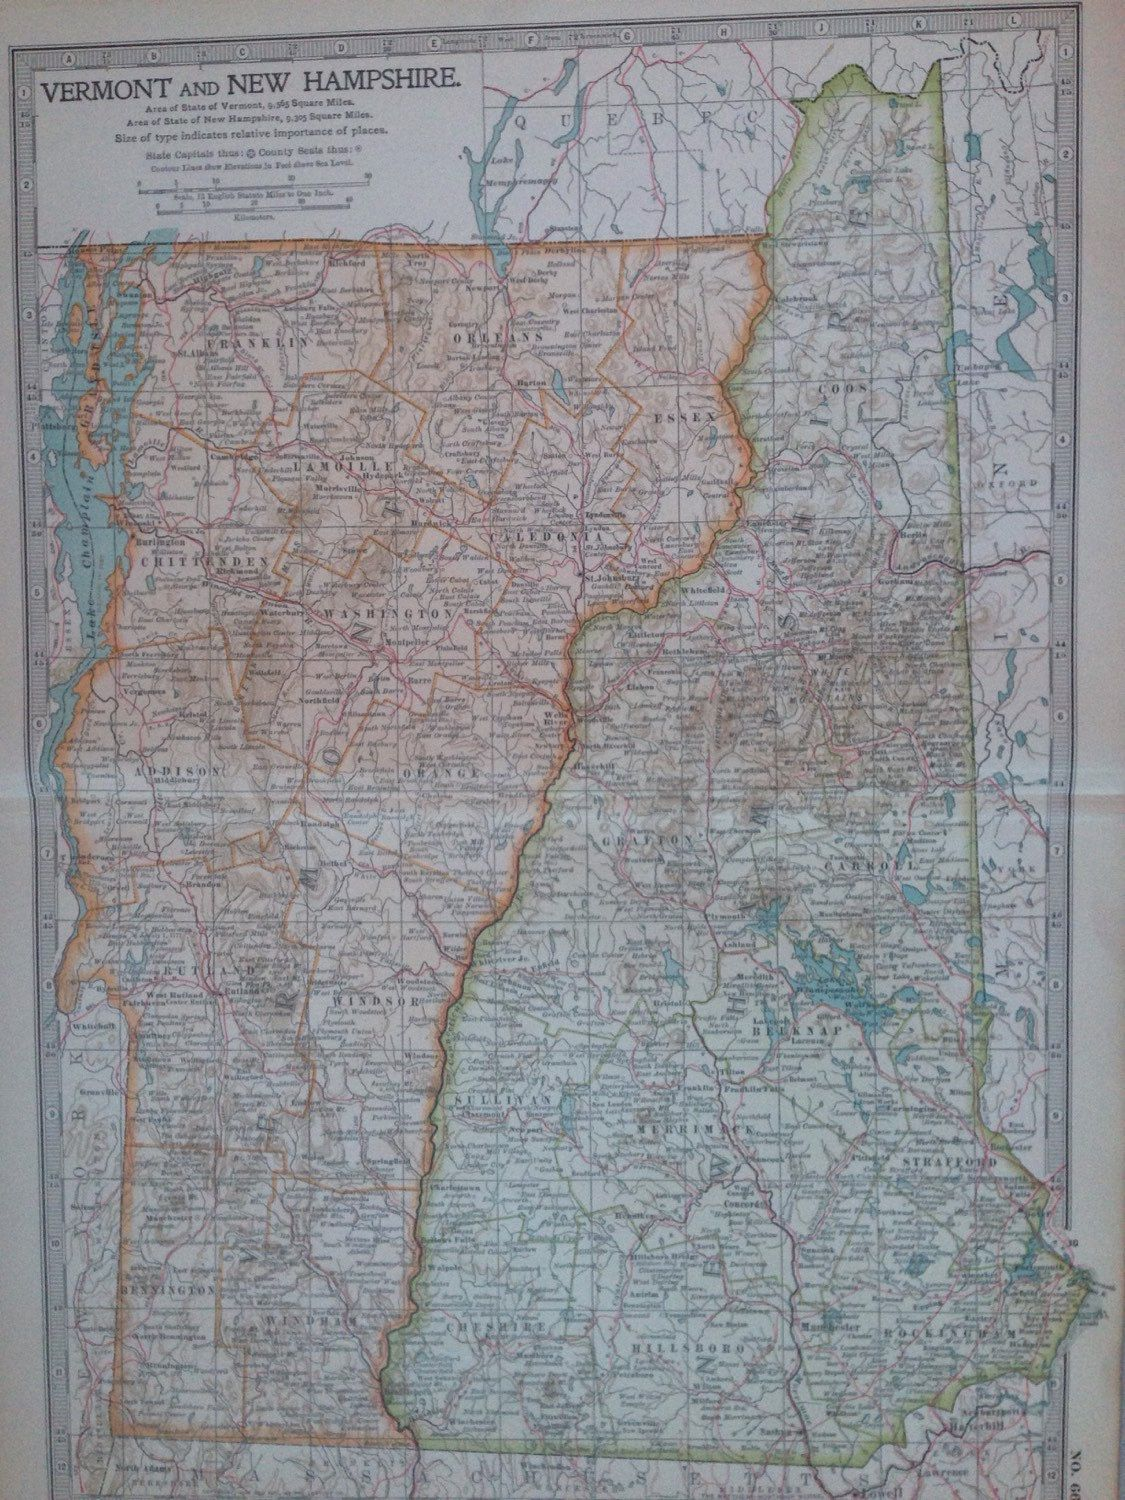 Nh Usa Map.1903 Vermont New Hampshire Original Large Antique Map Us State